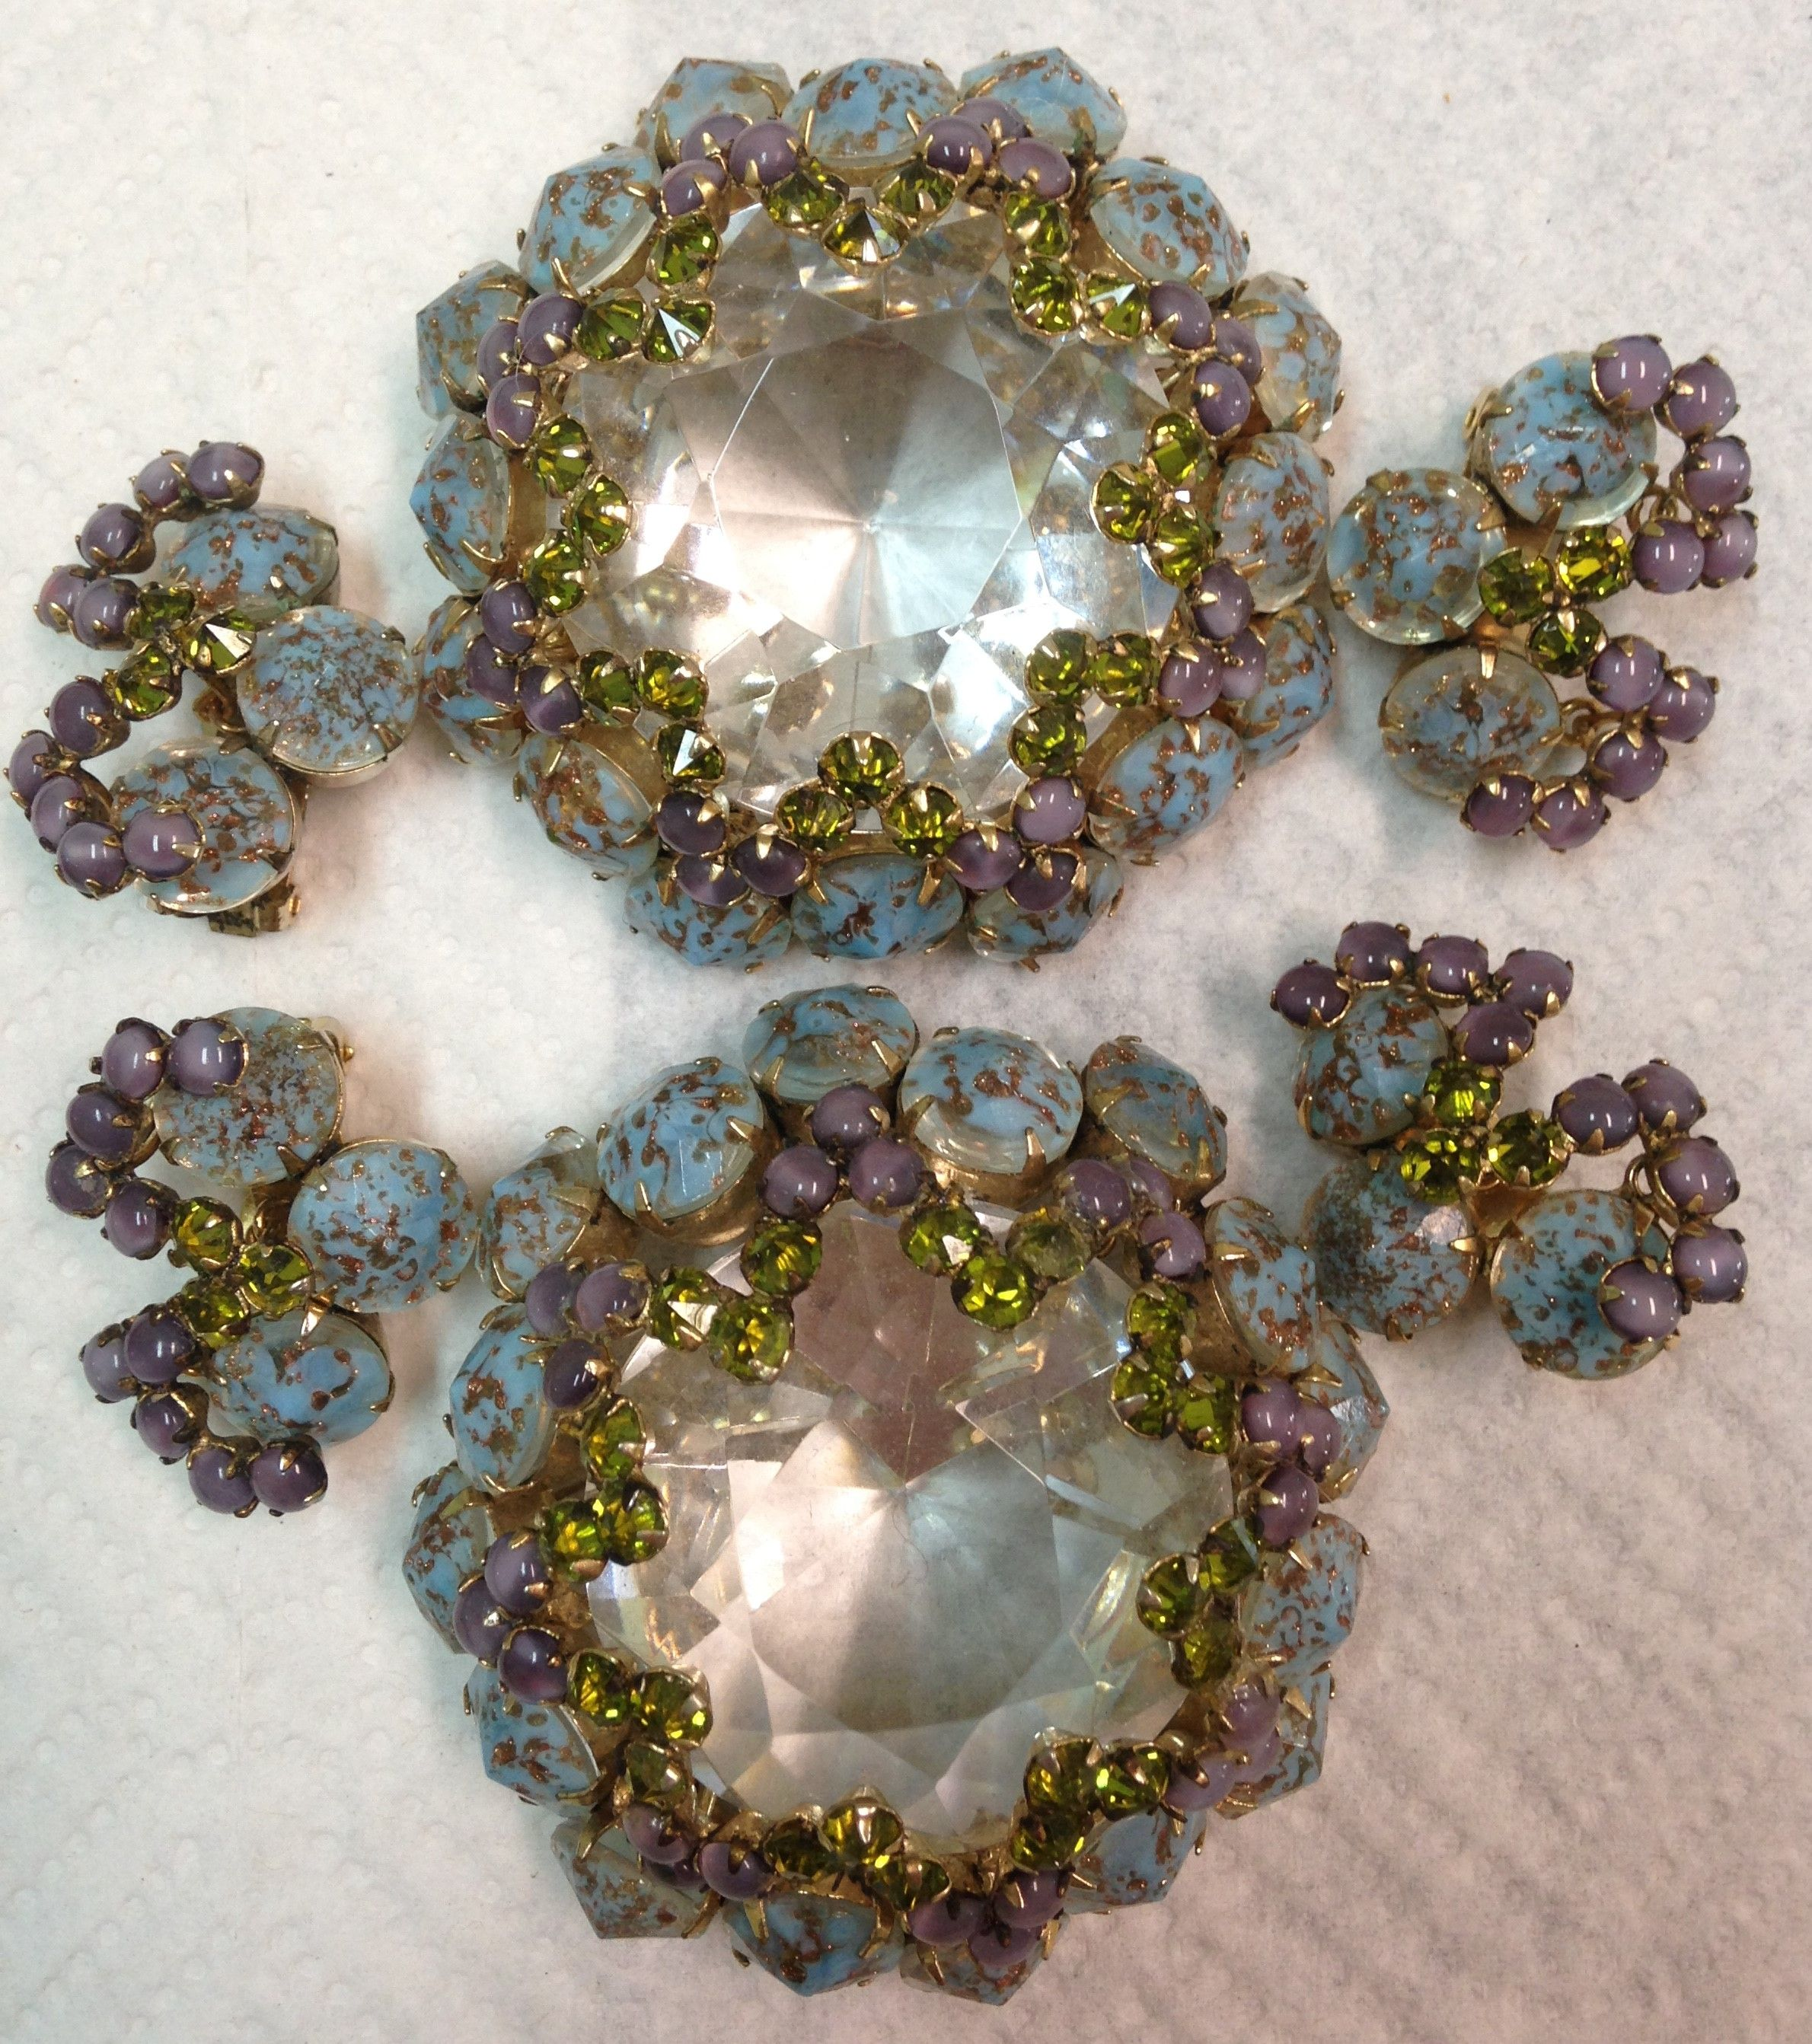 2 HUGE SCHREINER PAPERWEIGHT BROOCHES IN AQUA, LAVENDER & PERIDOT GREEN! THESE ARE VERY HEAVY, JUST LIKE A REGULAR PAPERWEIGHT. LOVE IT! OWN IT!